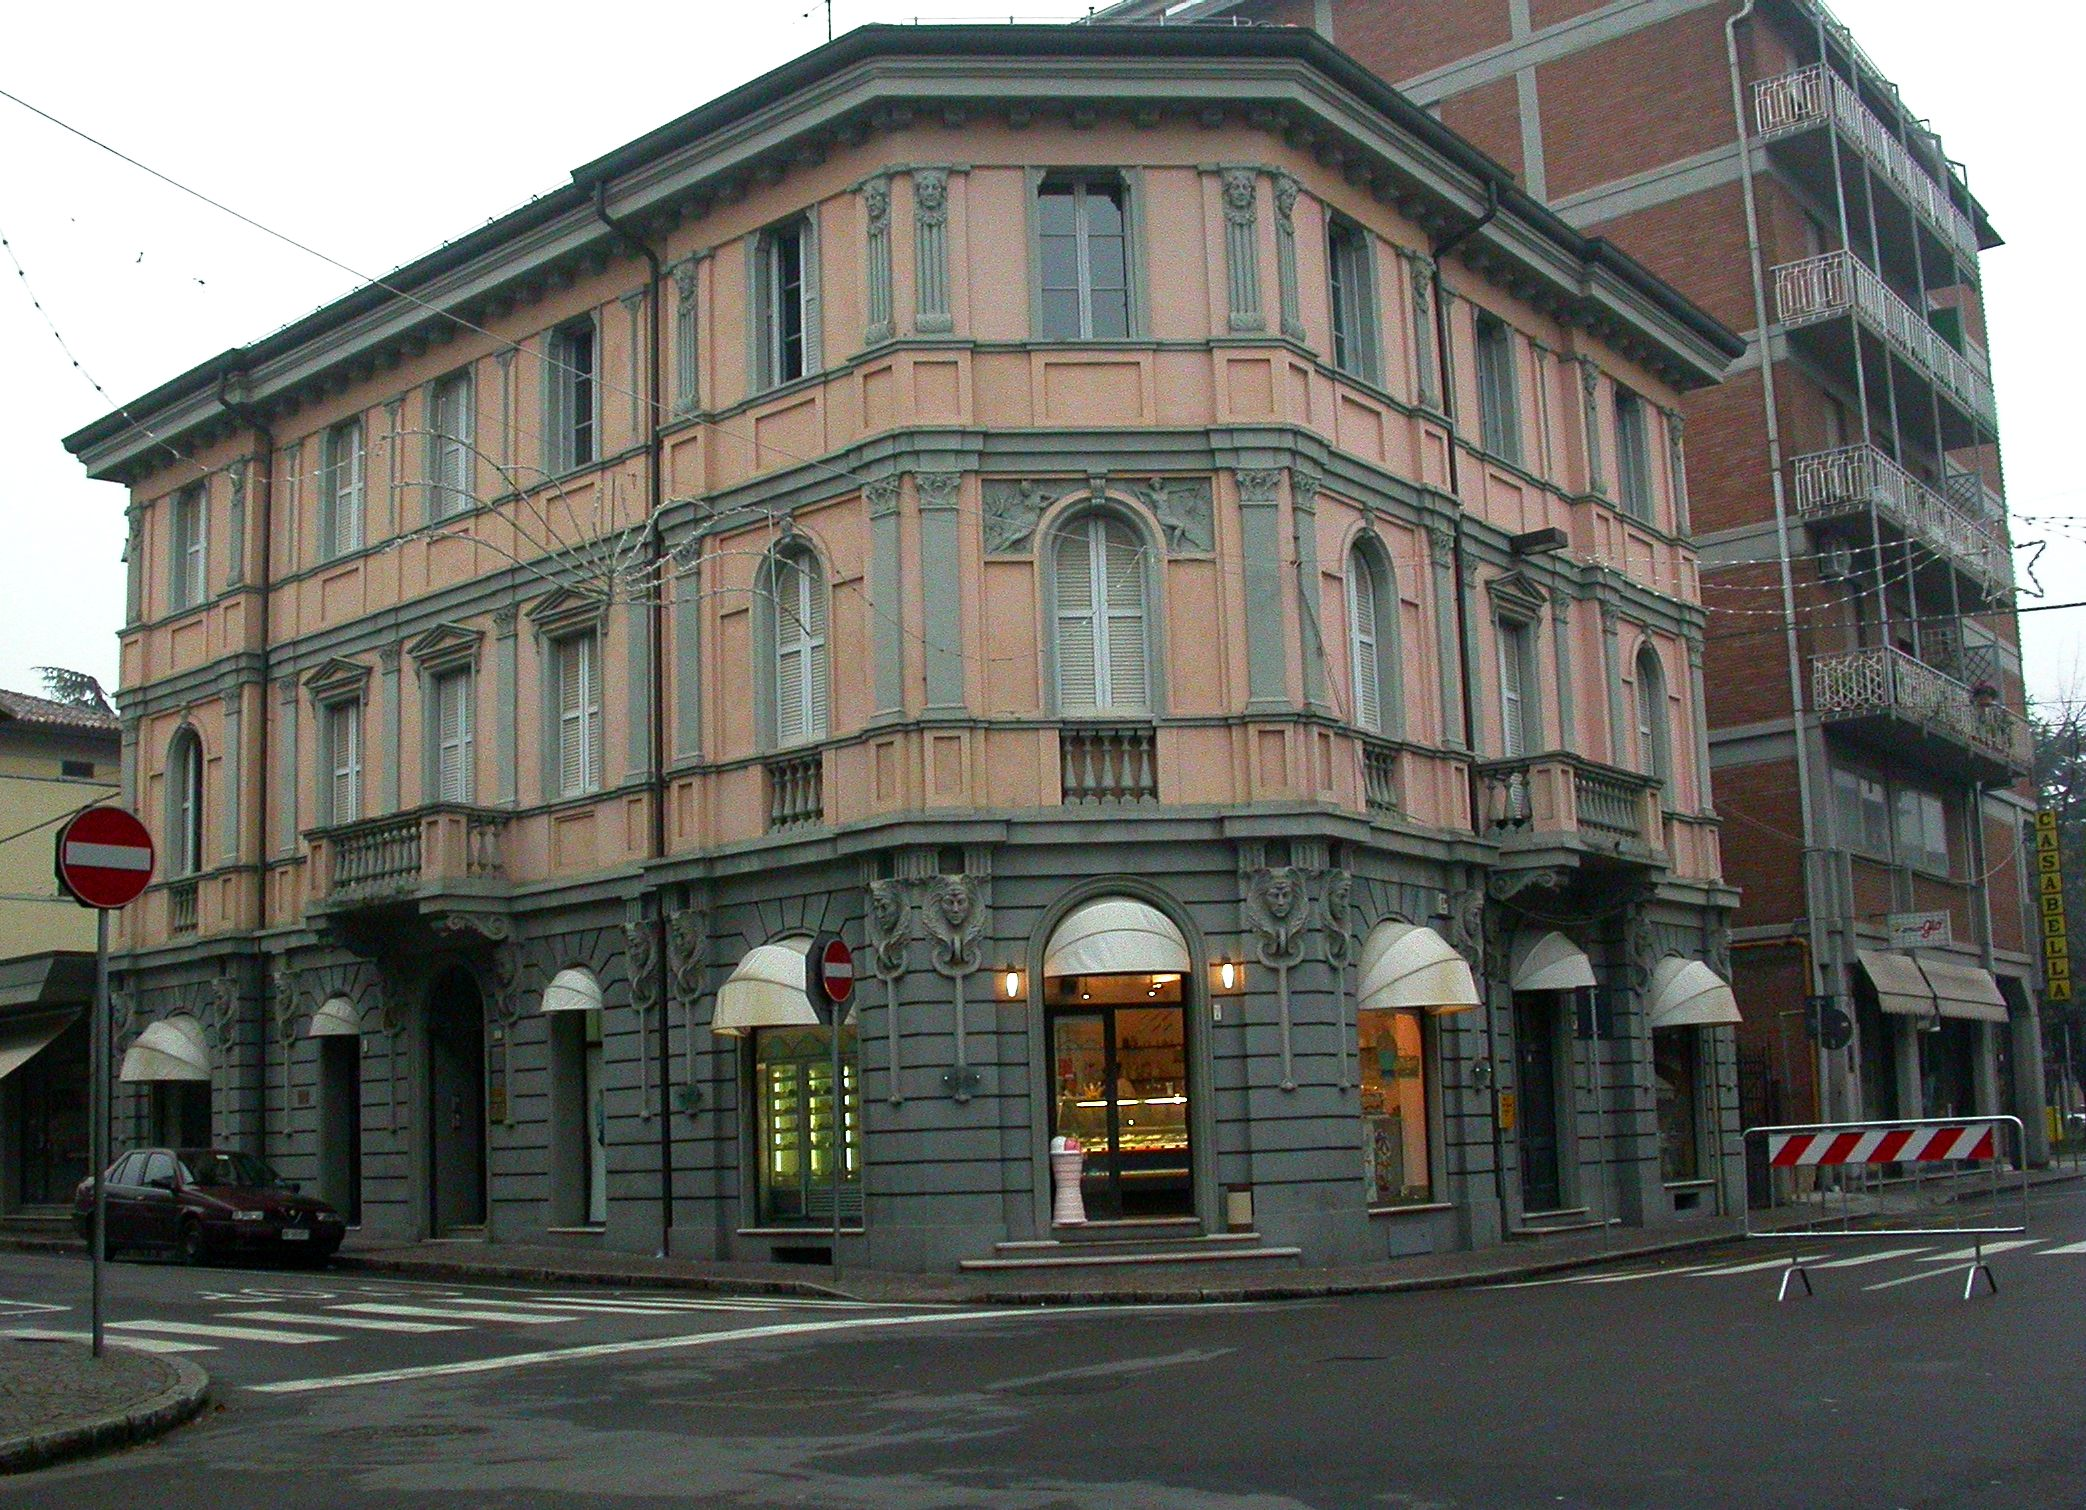 File:Scandiano old building.jpg - Wikimedia Commons